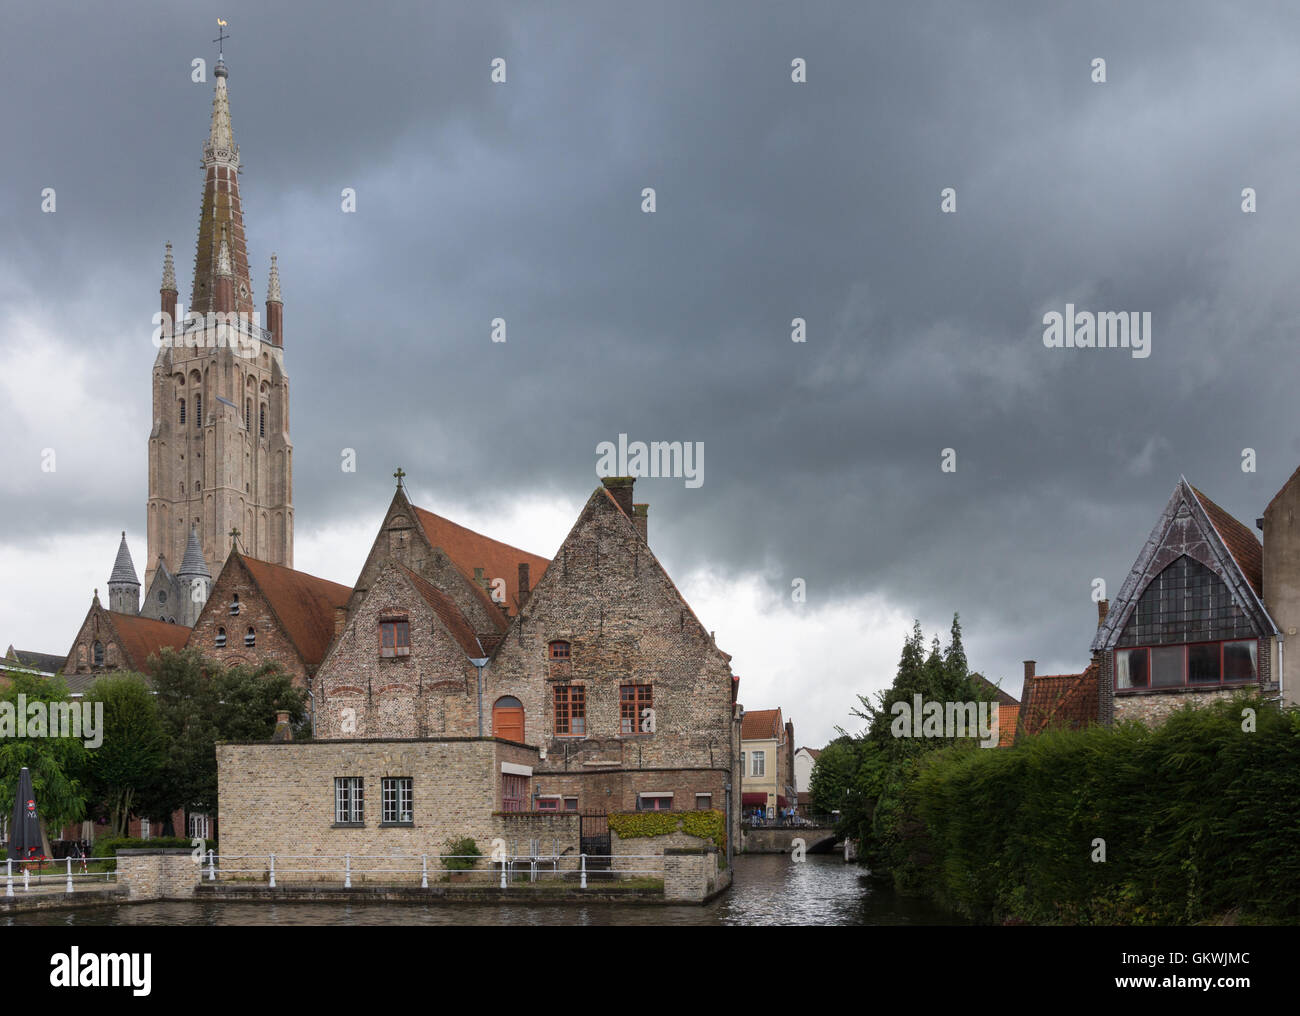 Onze-Lieve-Vrouw Cathedral behind Old Sint Jans Hospital. - Stock Image